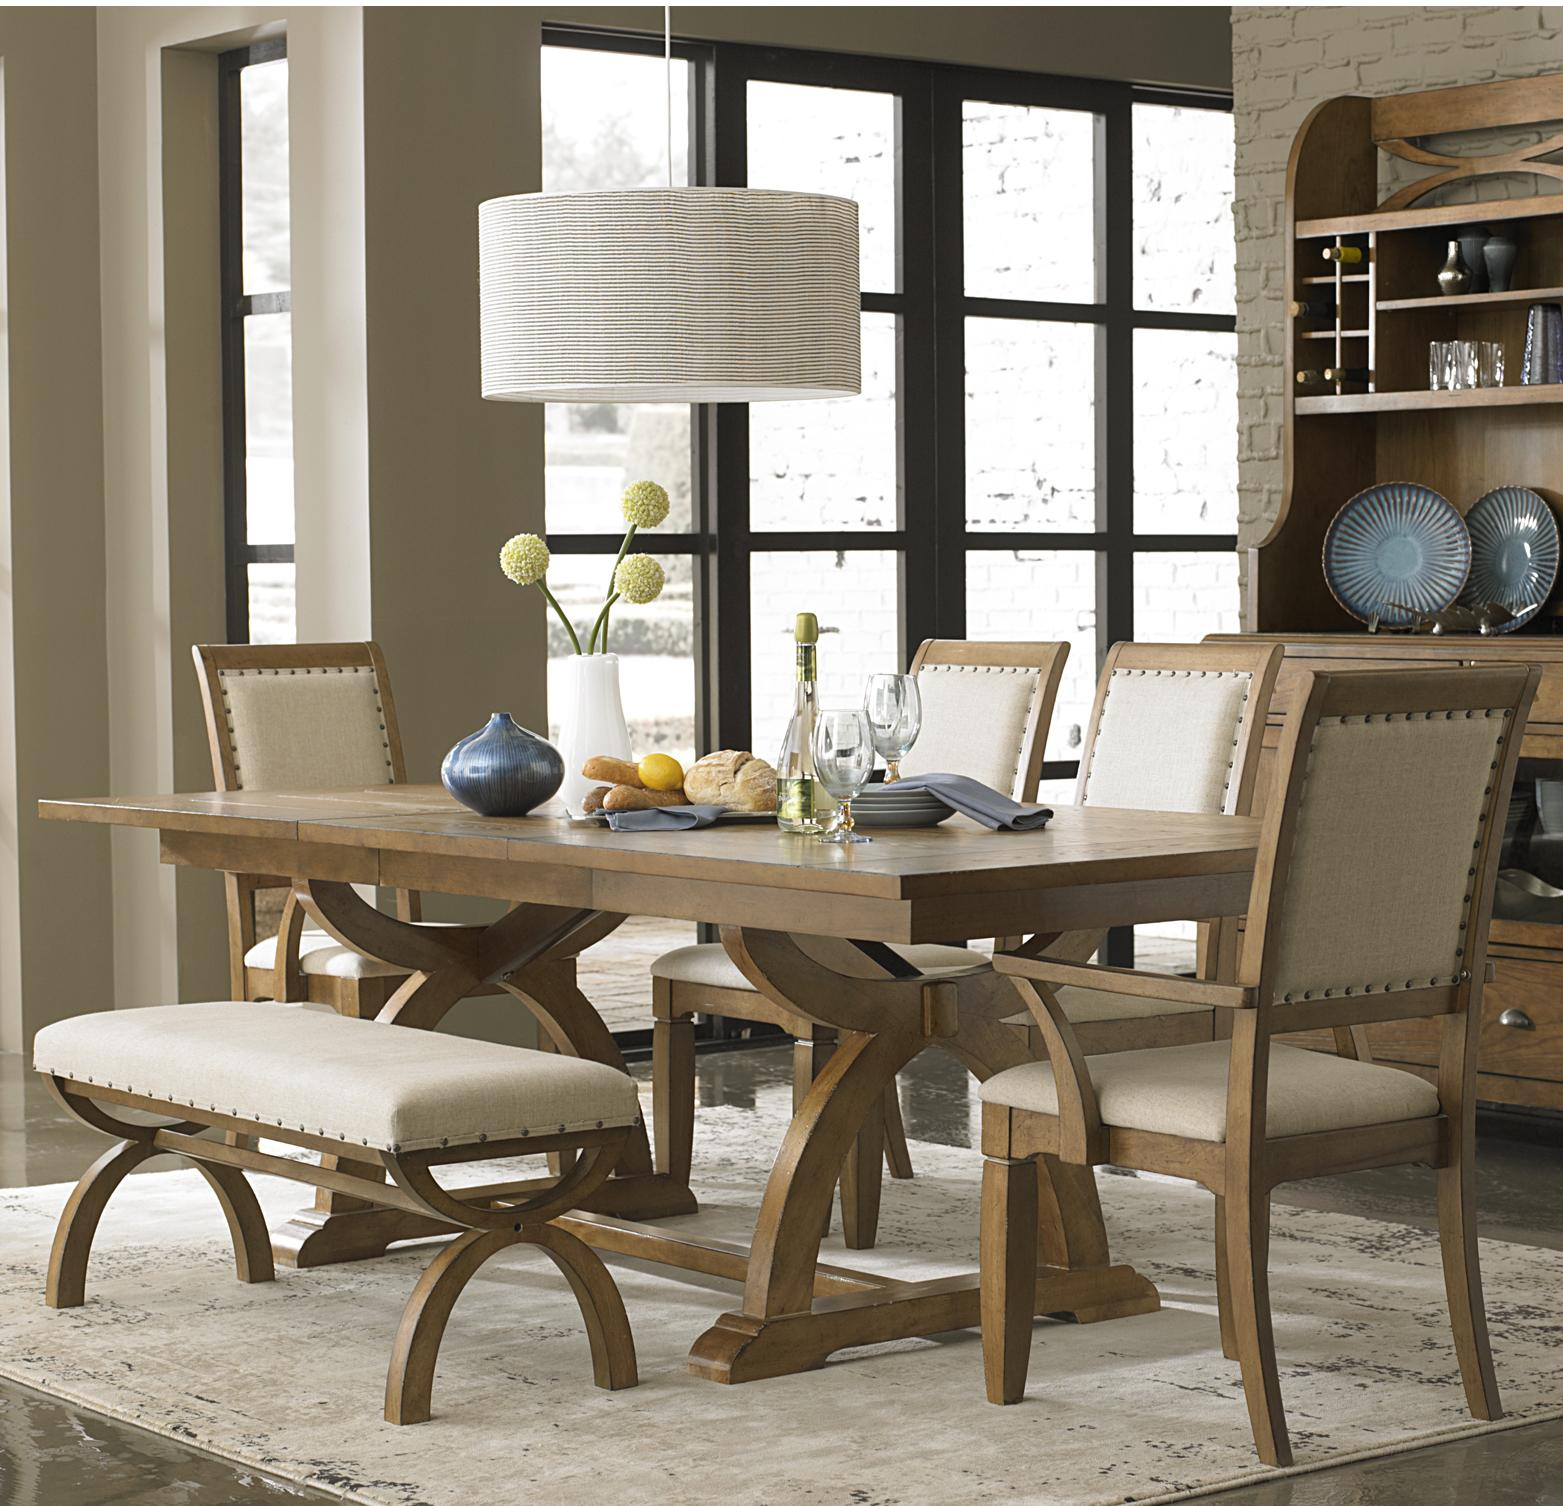 Awesome Trestle Dining Table Set Part - 10: 6 Piece Trestle Table Set With 4 Upholstered Chairs U0026 Dining Bench